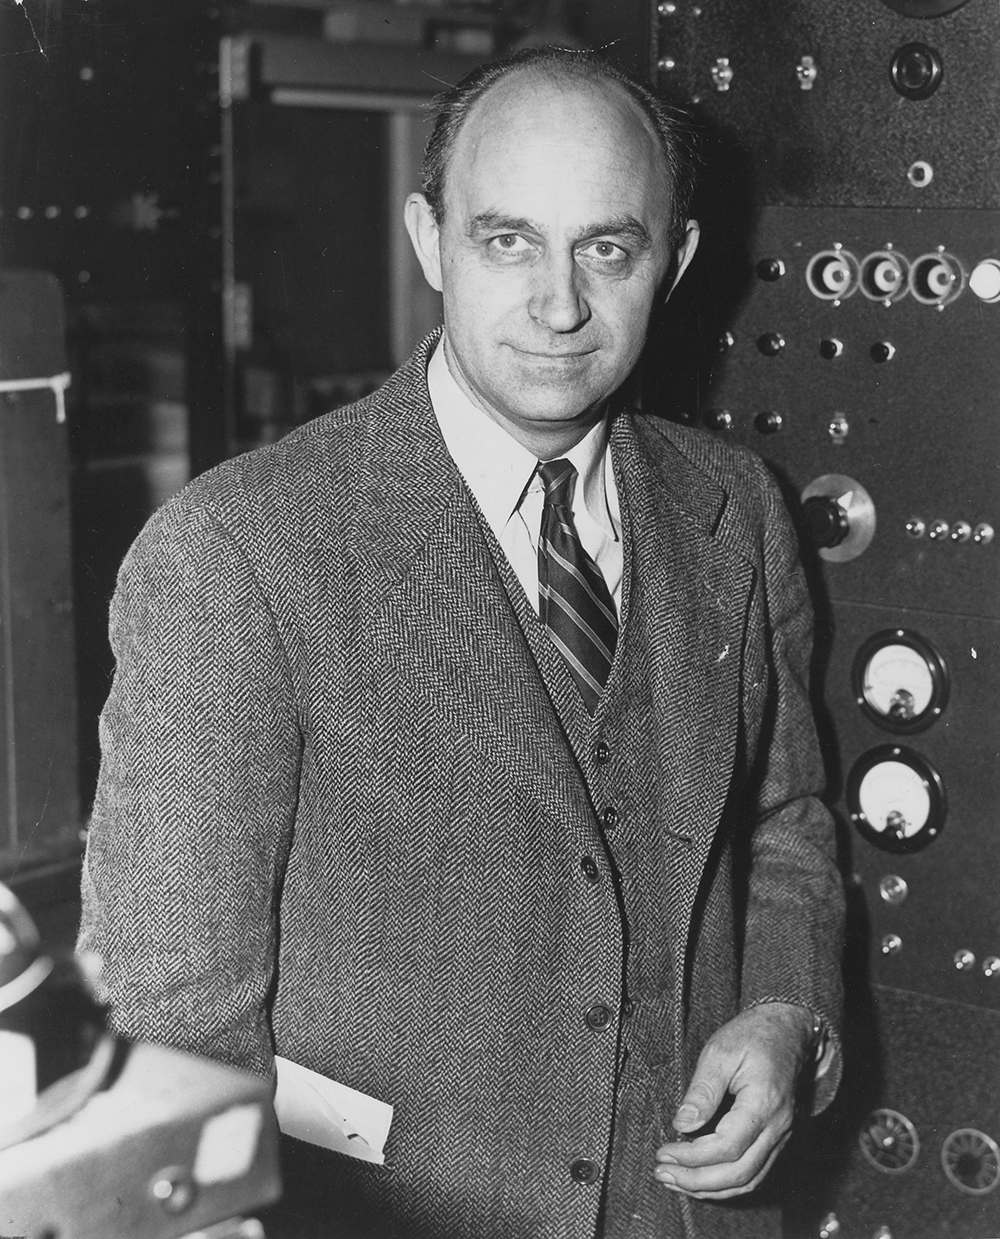 Enrico Fermi, c. 1946. National Archives, U.S. Department of Energy, Office of Public Affairs.